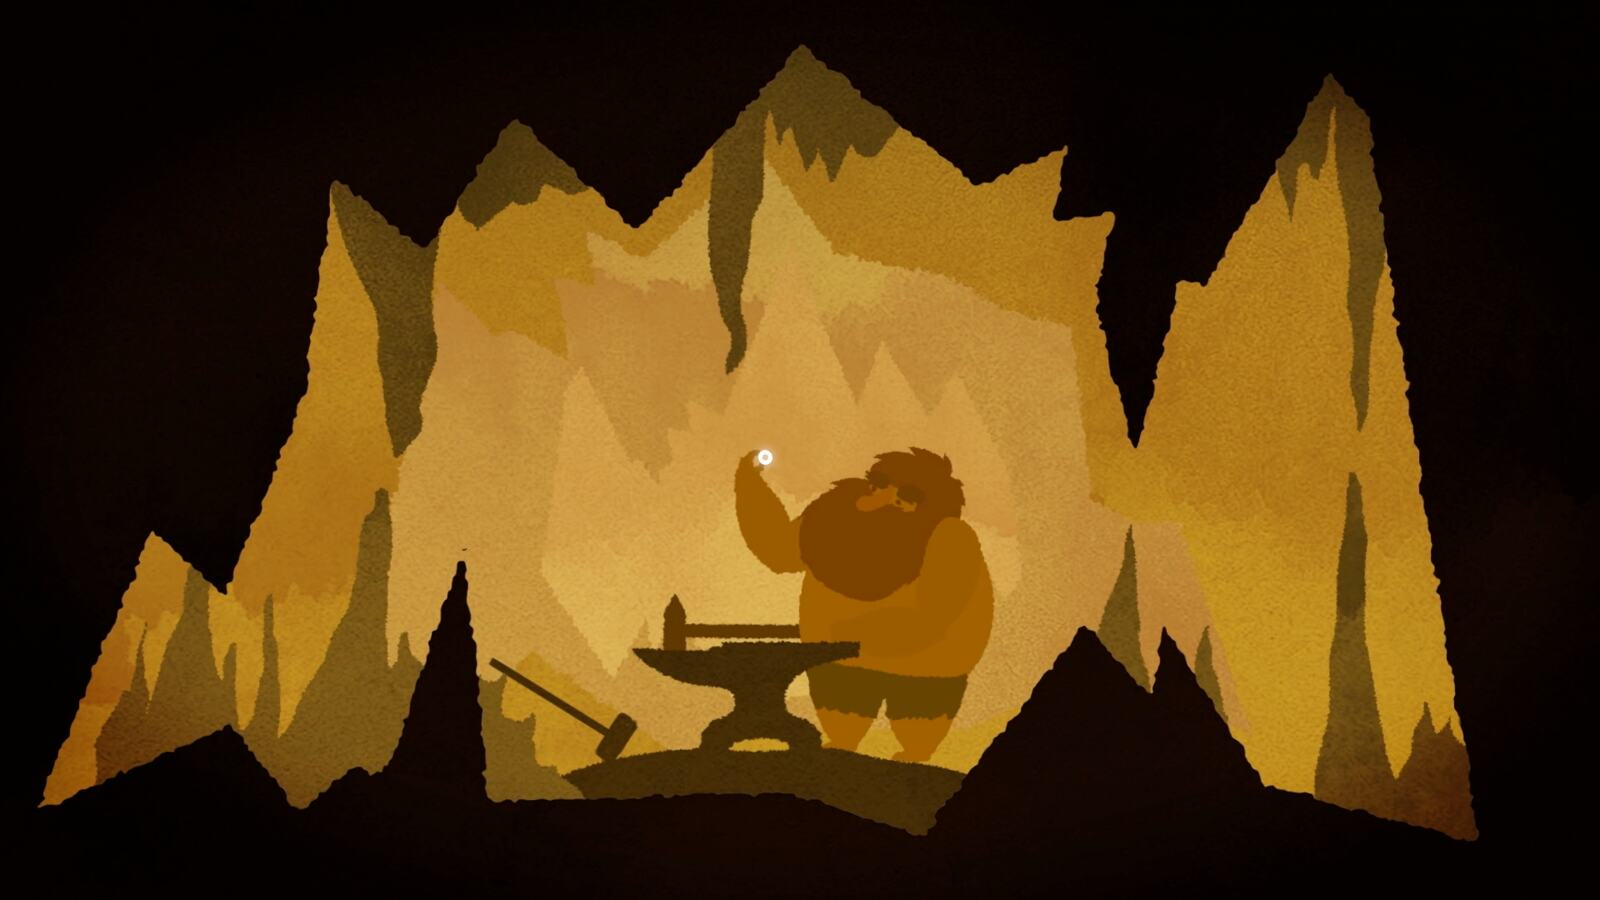 Still from an animation about Wagner's Ring Cycle